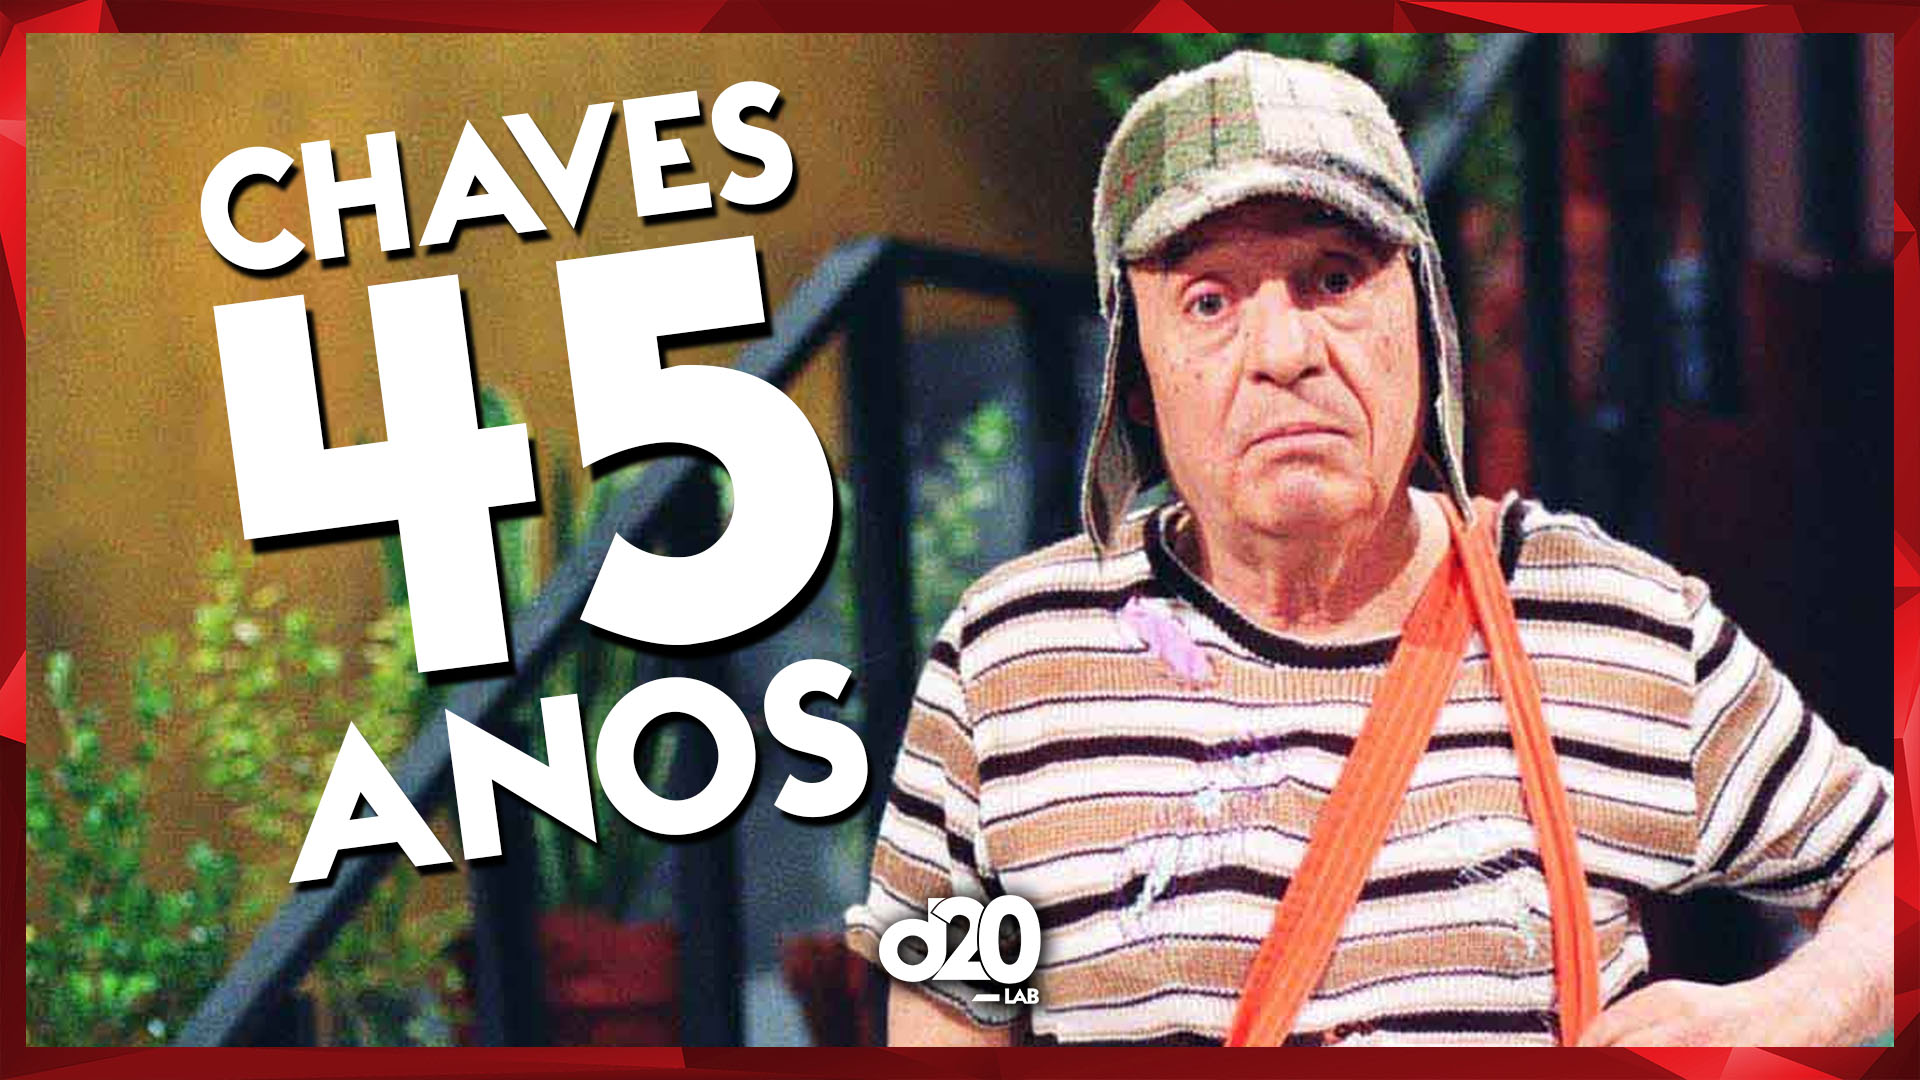 Chaves: 45 anos | D20 Lab 10